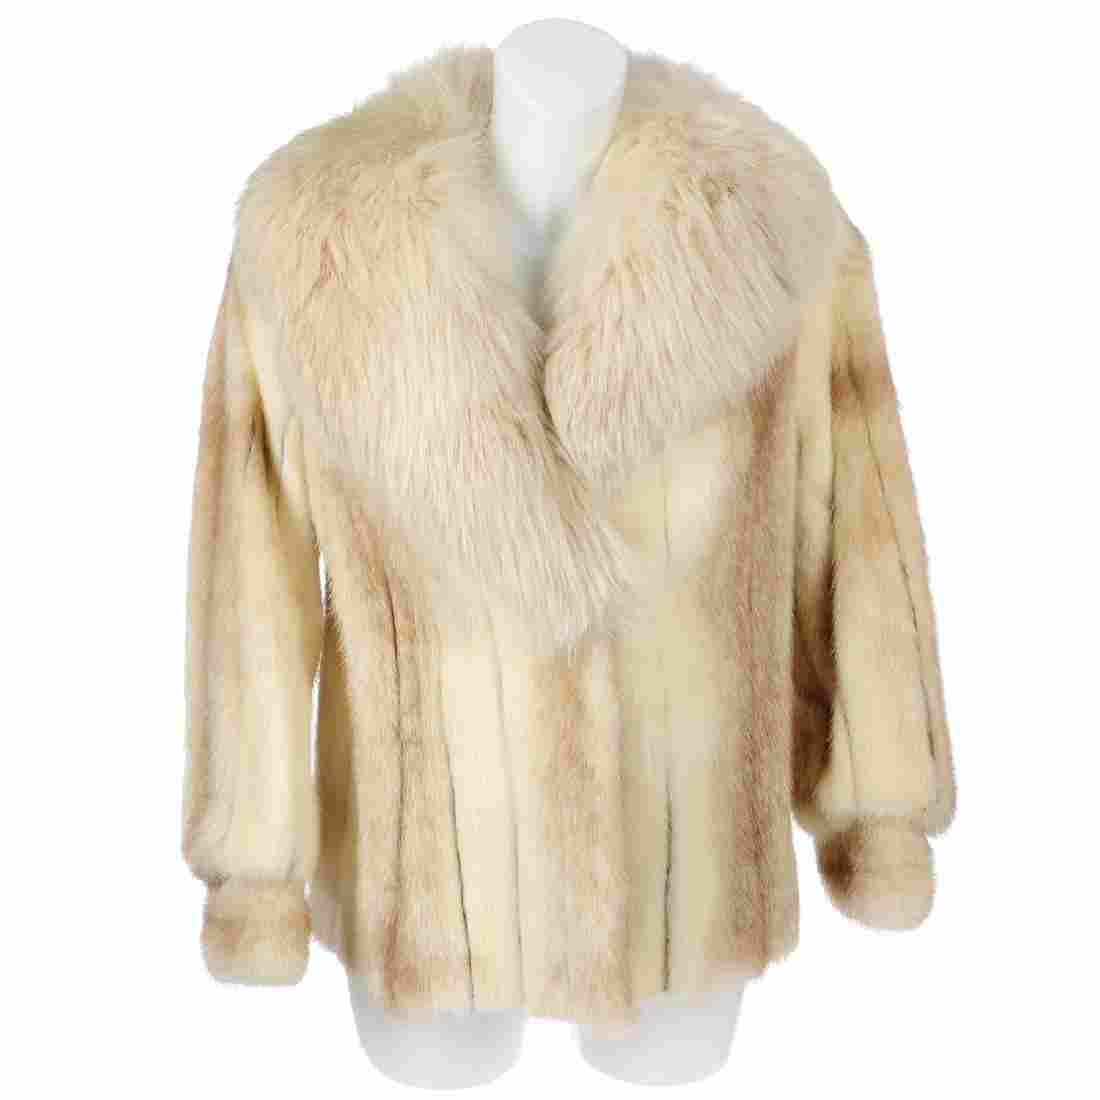 A two-tone mink jacket with fox fur collar. Crafted